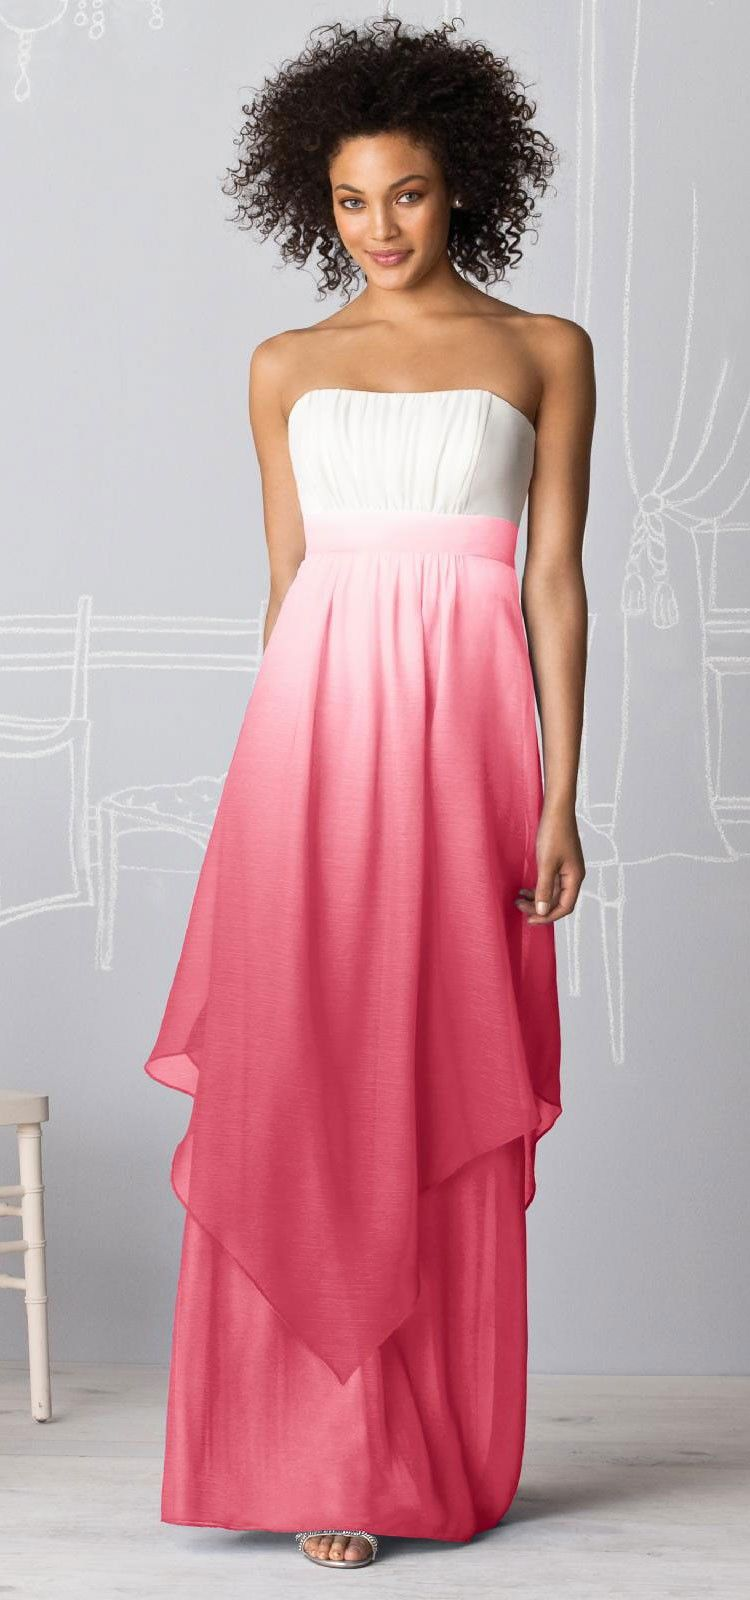 Ombre wedding attire. Great Bridesmaid\'s dress. | Ombre: fashion ...